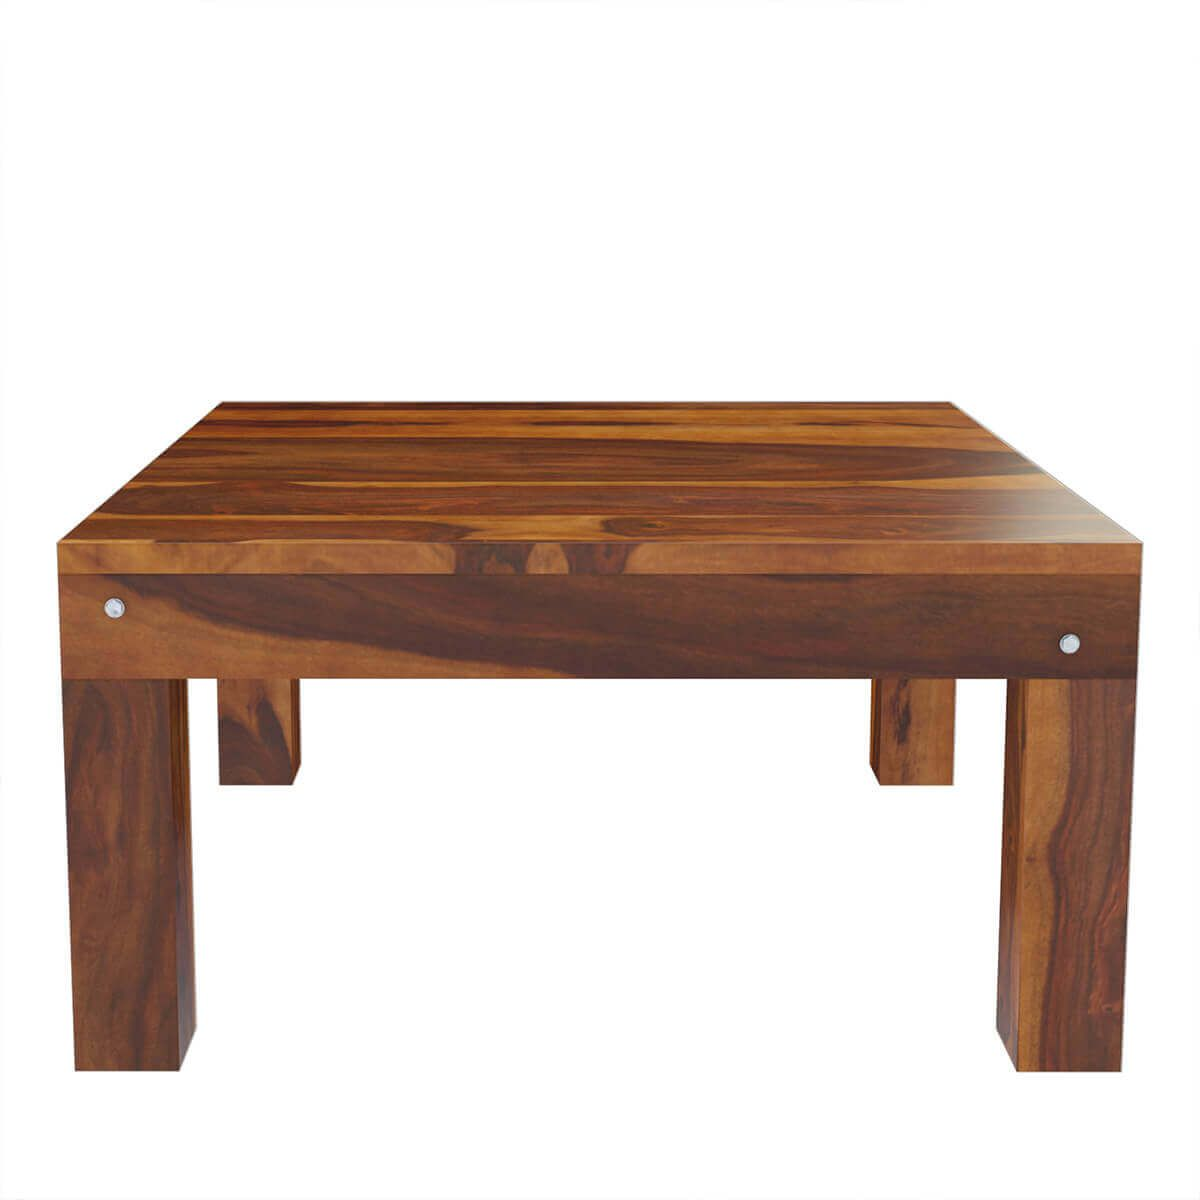 Patet Contemporary Rustic Solid Wood 3 Piece Coffee Table Set 3 Piece Coffee Table Set Coffee Table Coffee Table Setting [ 1200 x 1200 Pixel ]